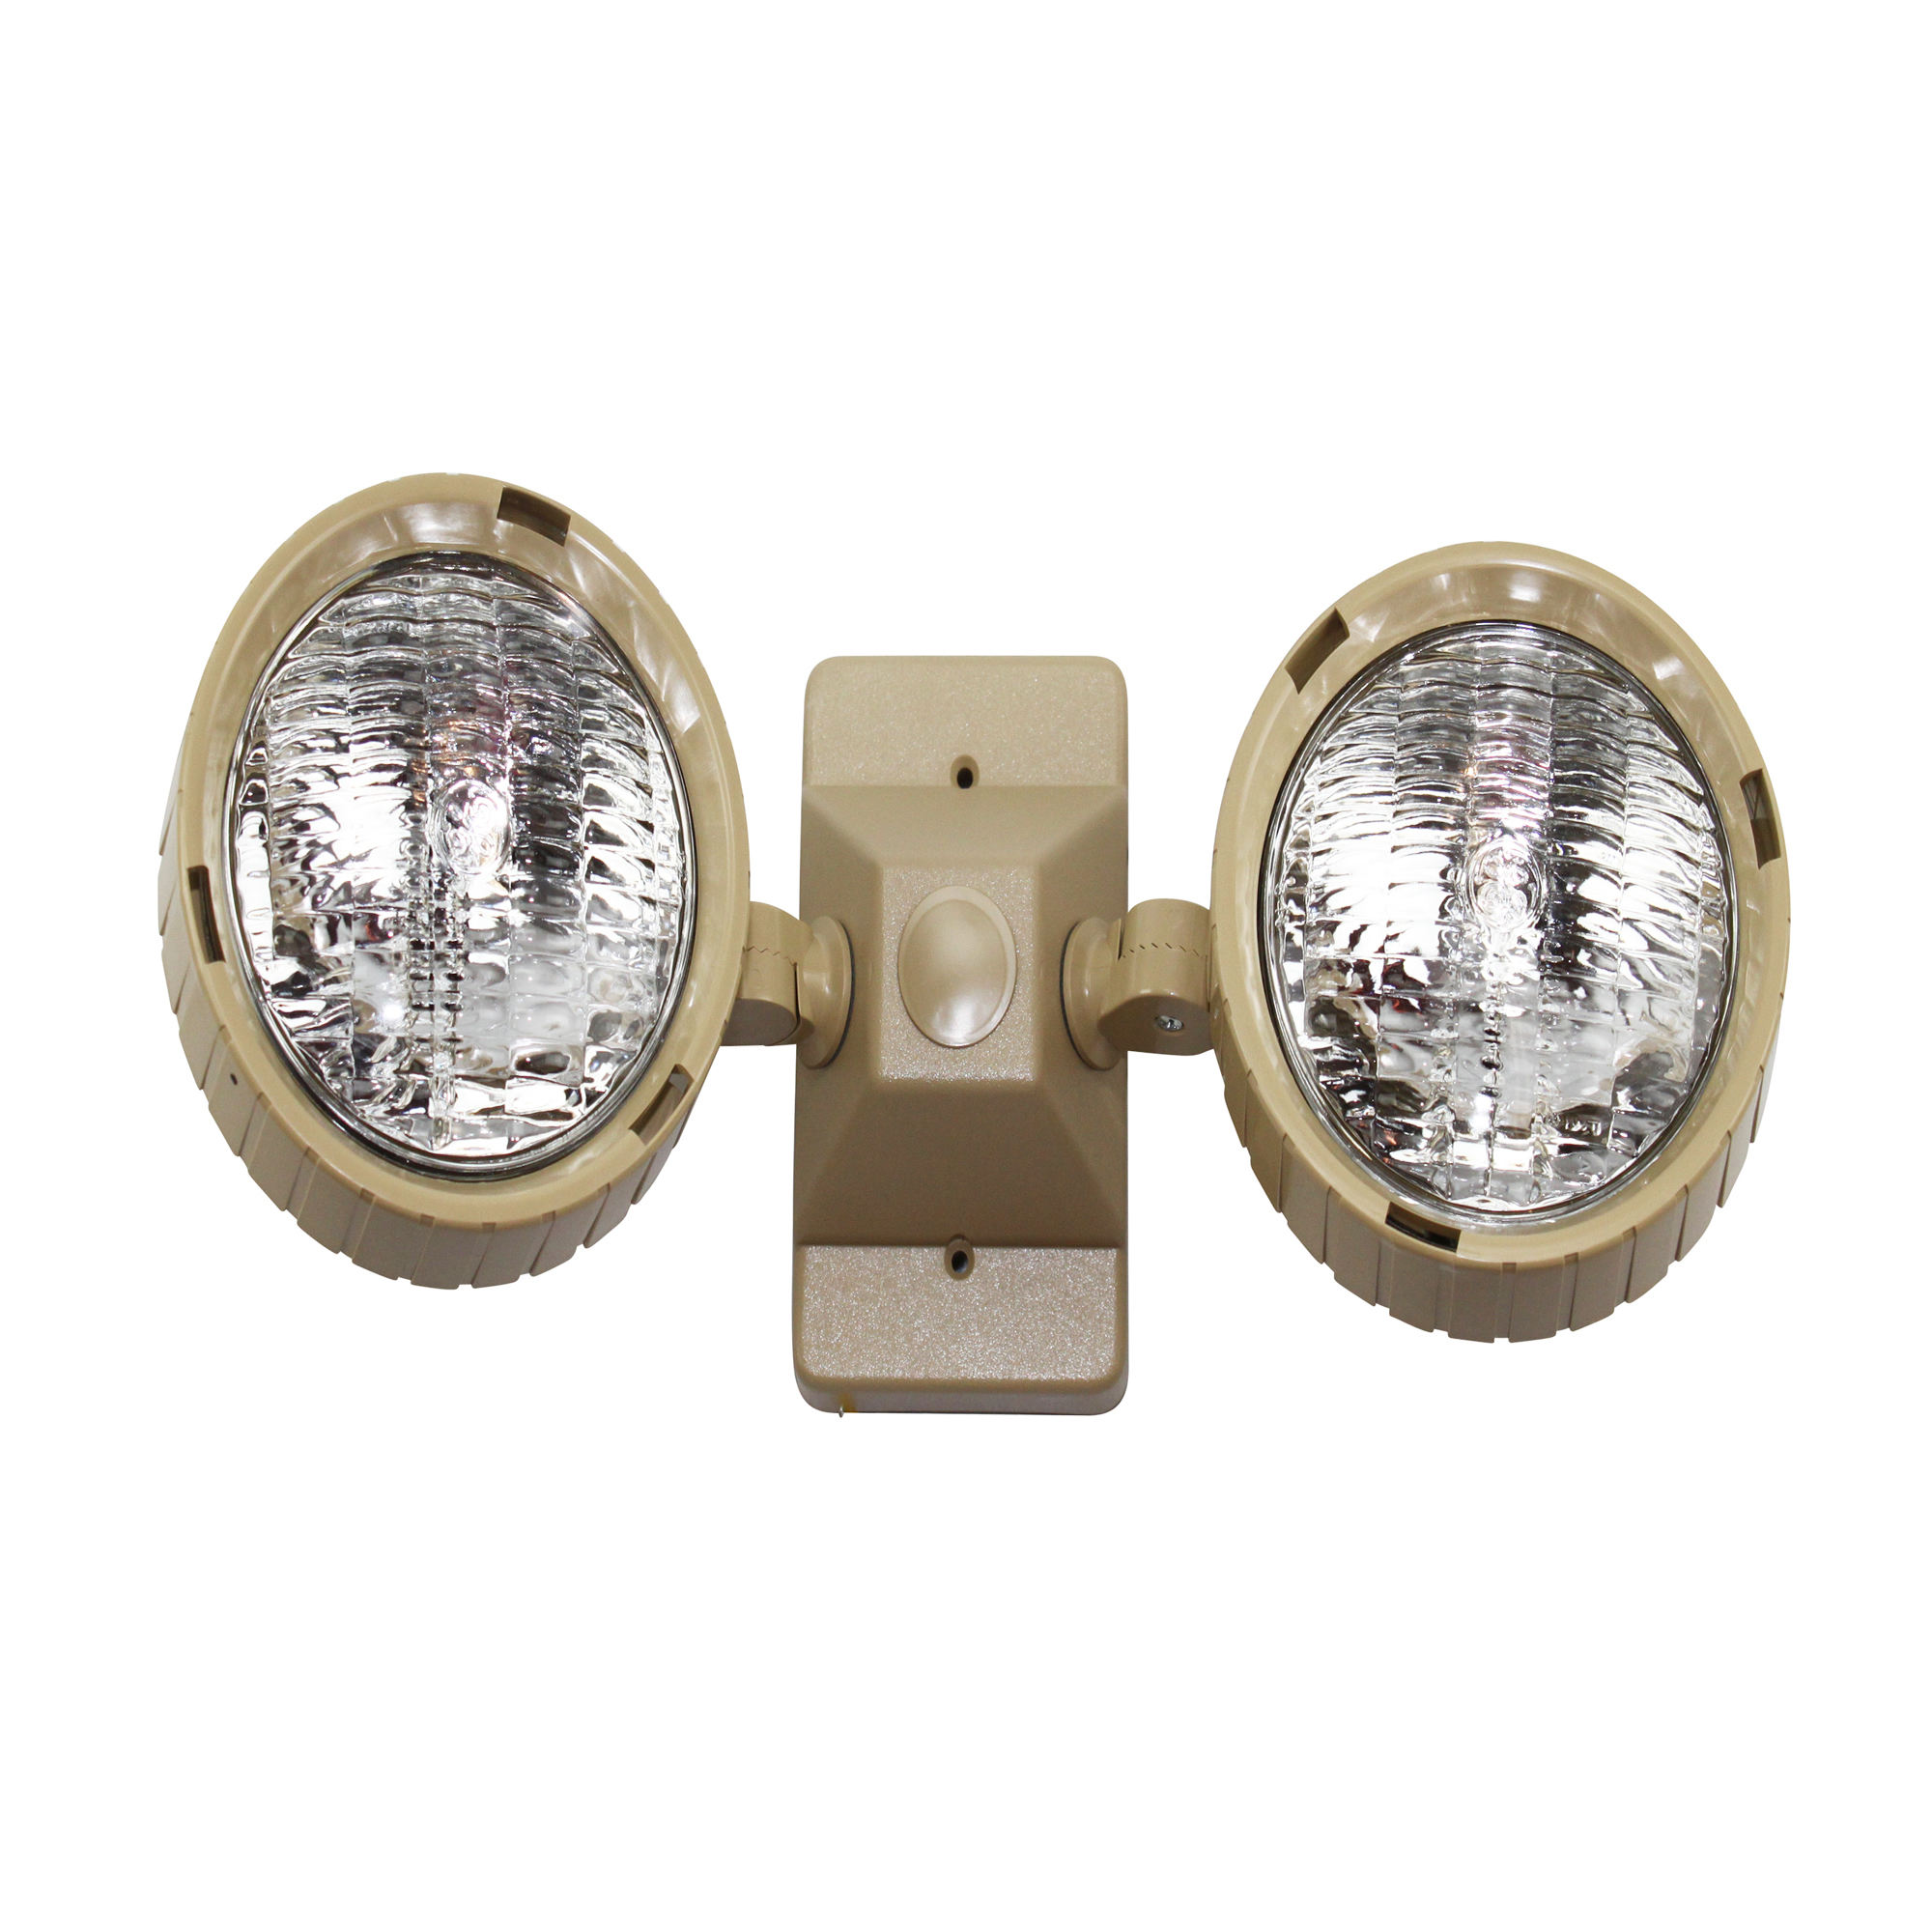 Lithonia Remote Emergency Bug Eye Light